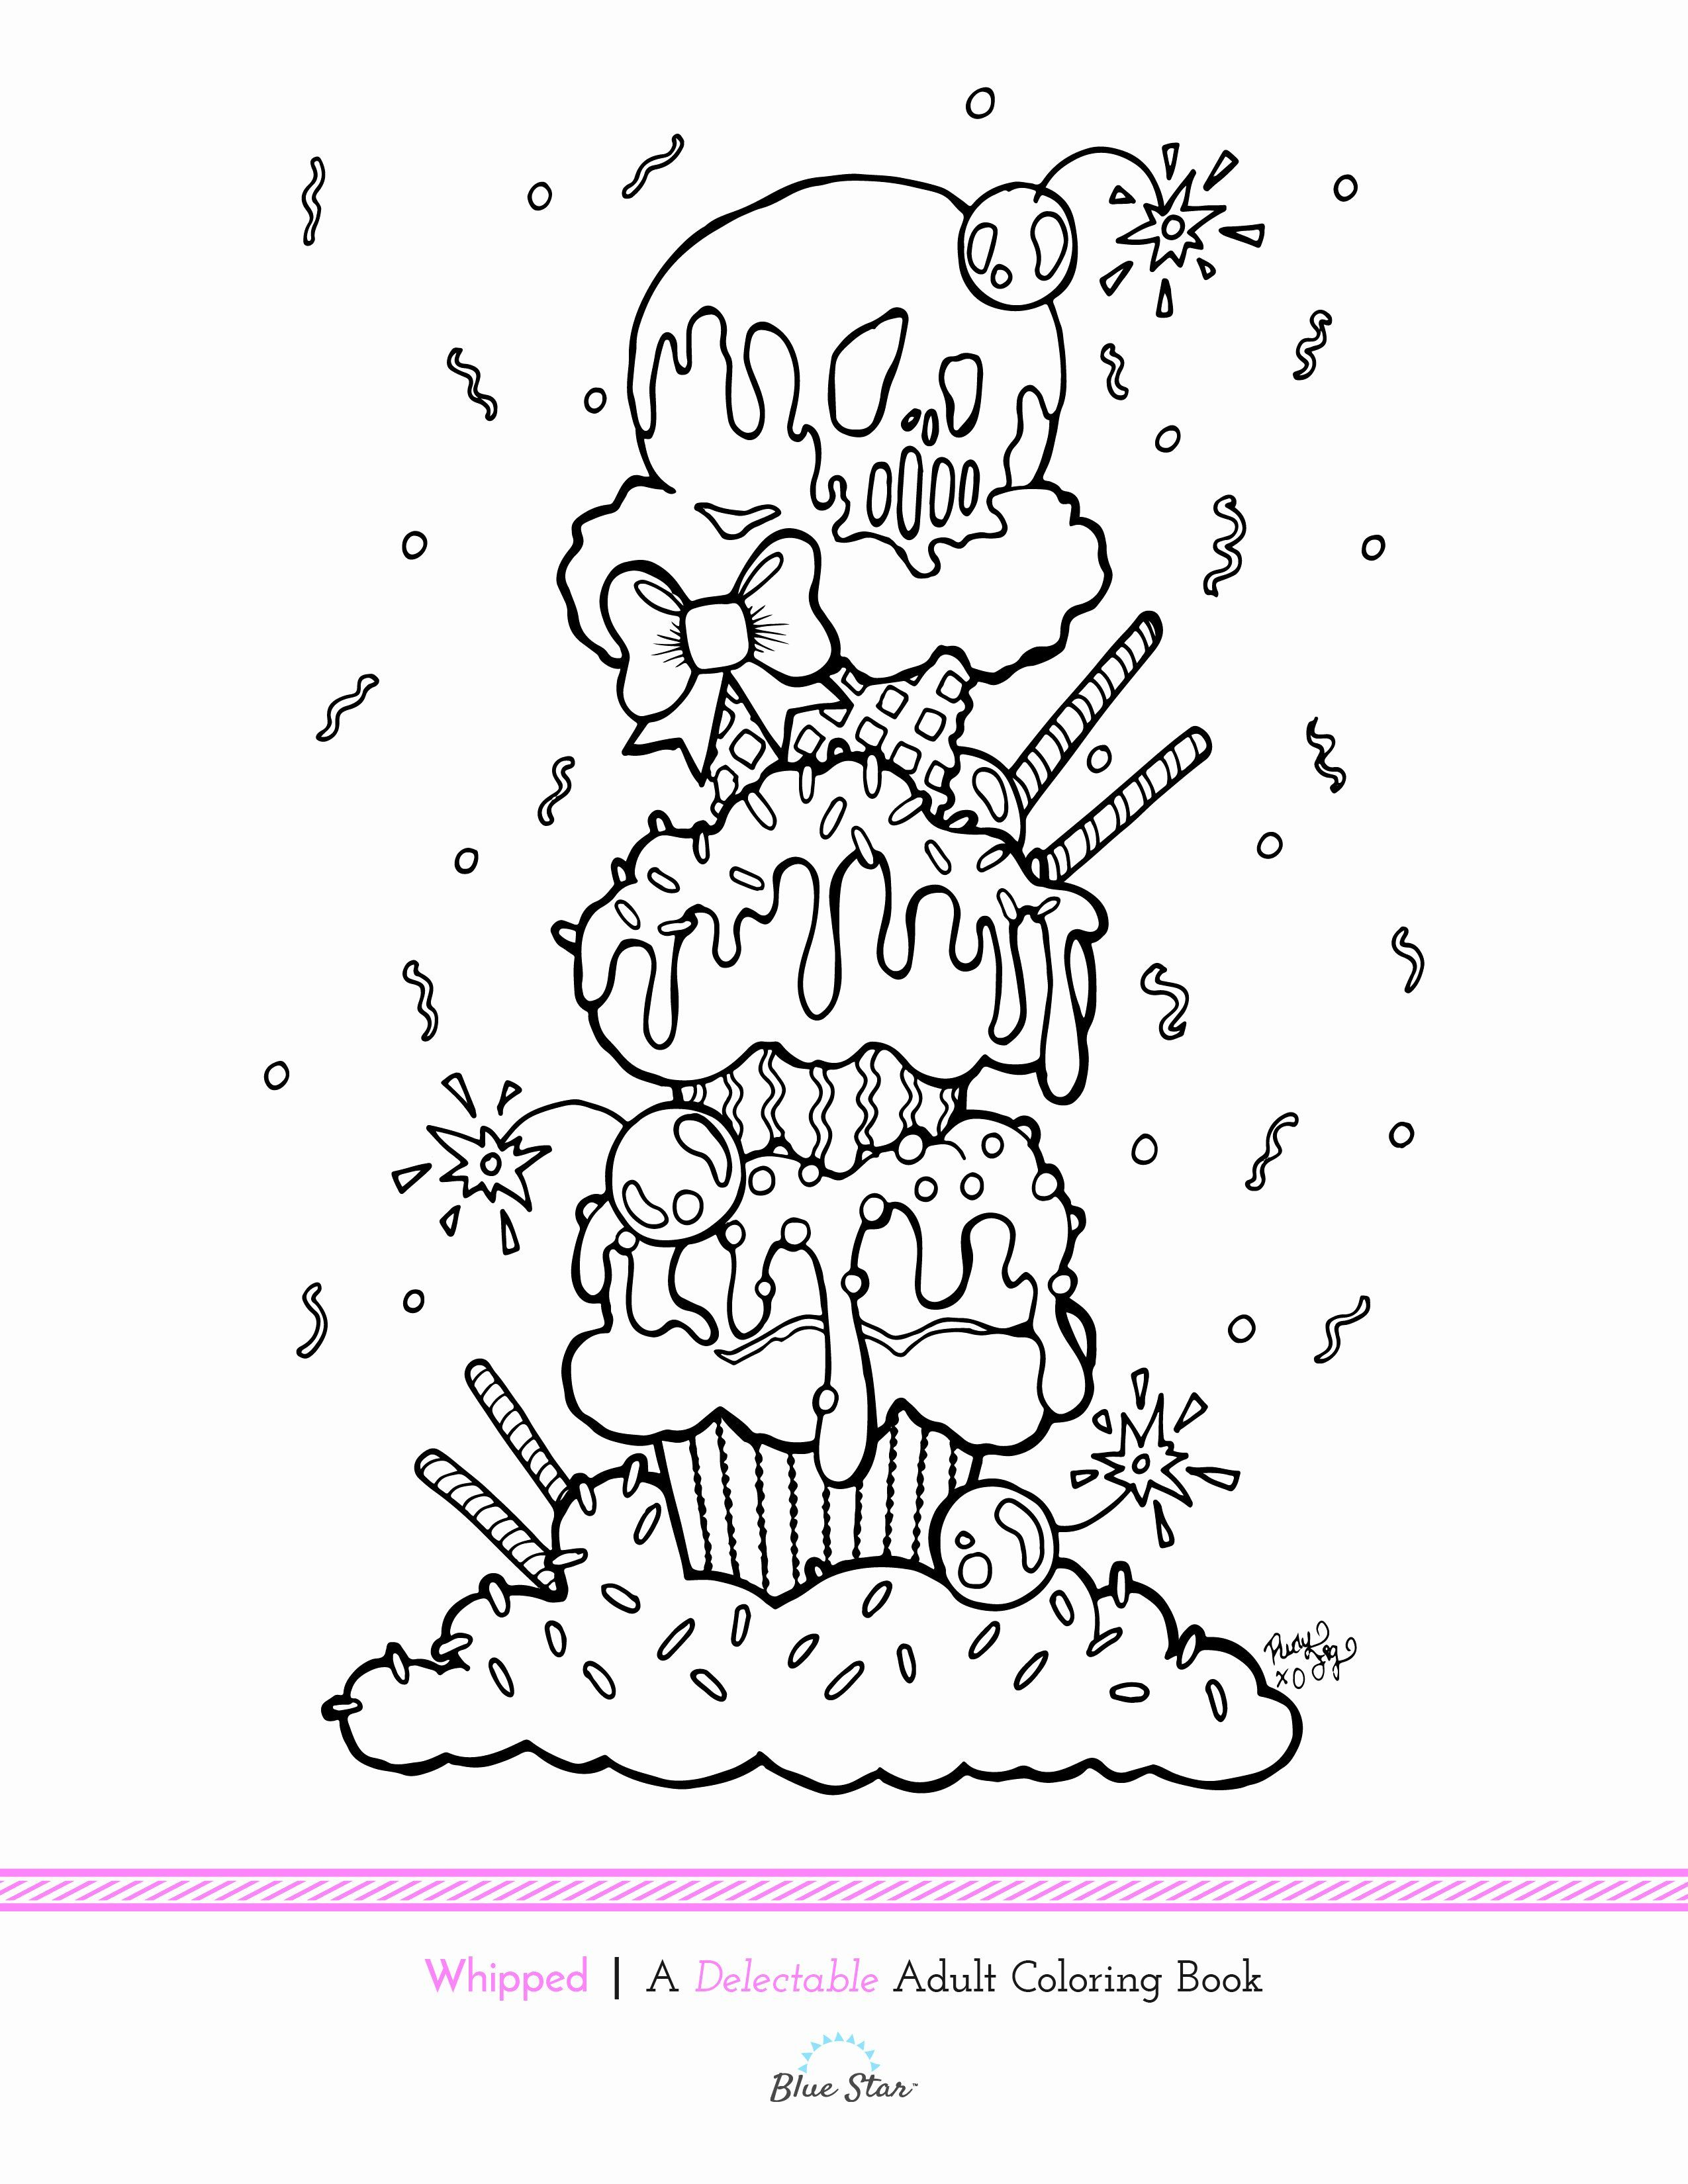 Vegetable Coloring Book Pdf Fresh Coloring Pages 39 Food Coloring Book Picture Ideas Free Coloring Books Coloring Pages Food Coloring Pages